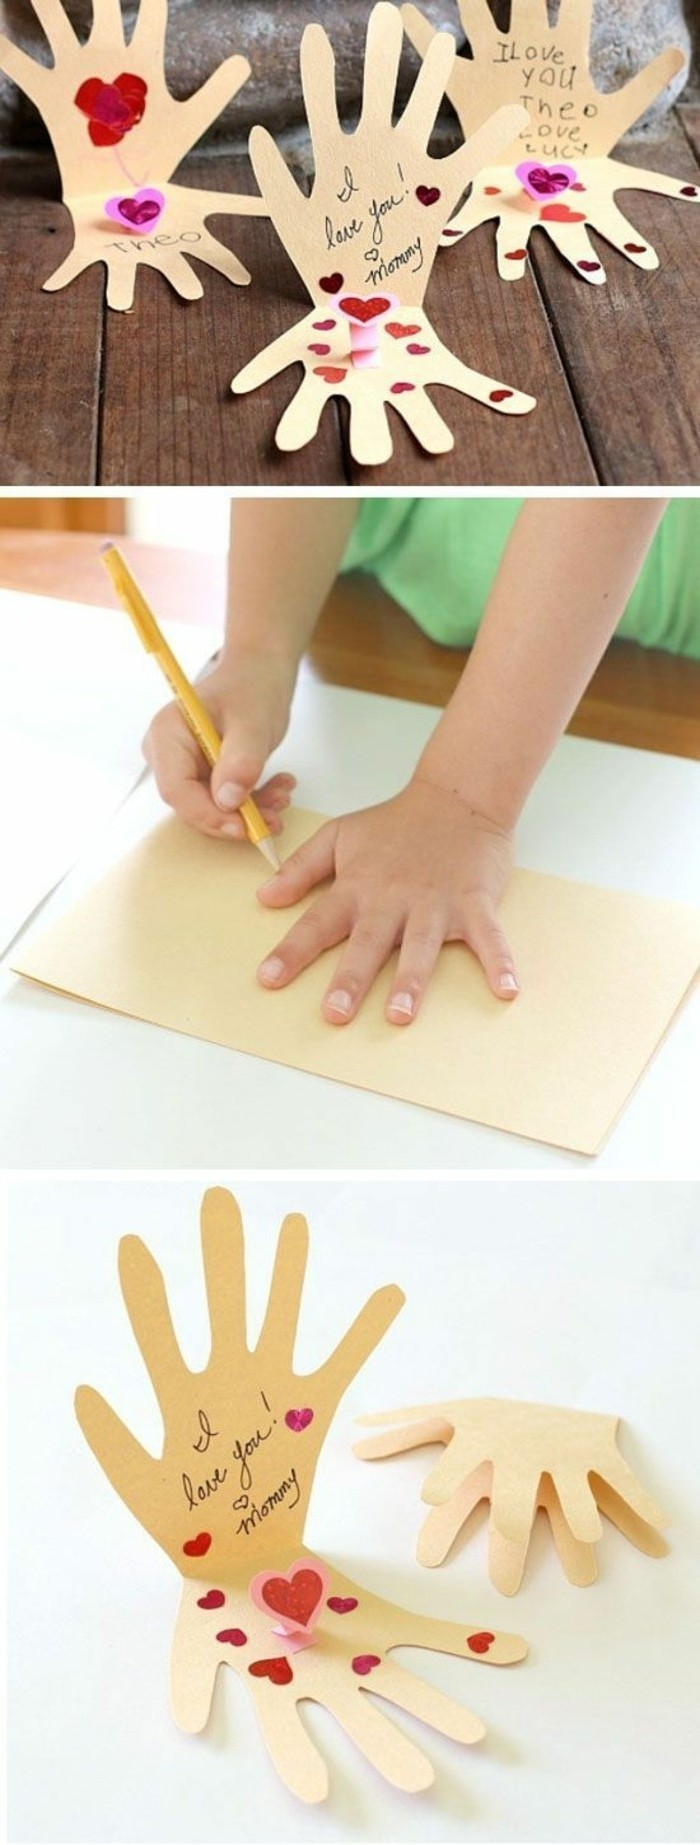 three mother's day cards, made from hand-shaped cutouts, child tracing their hand on paper, two finished cards